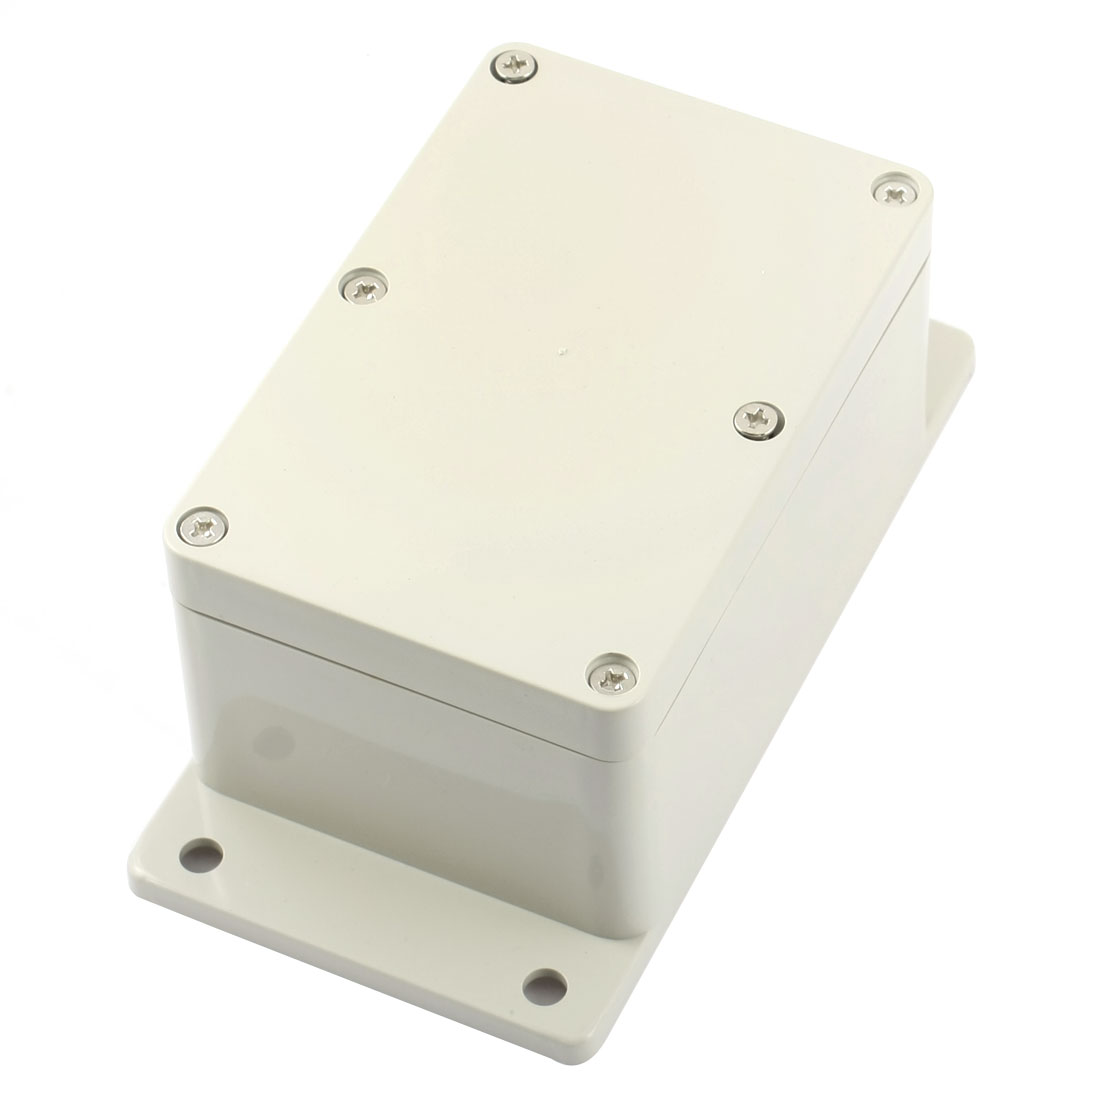 120mm x 80mm x 55mm DIY Rectangle Light Gray Plastic Waterproof Plastic Junction Box Electric Protection Case